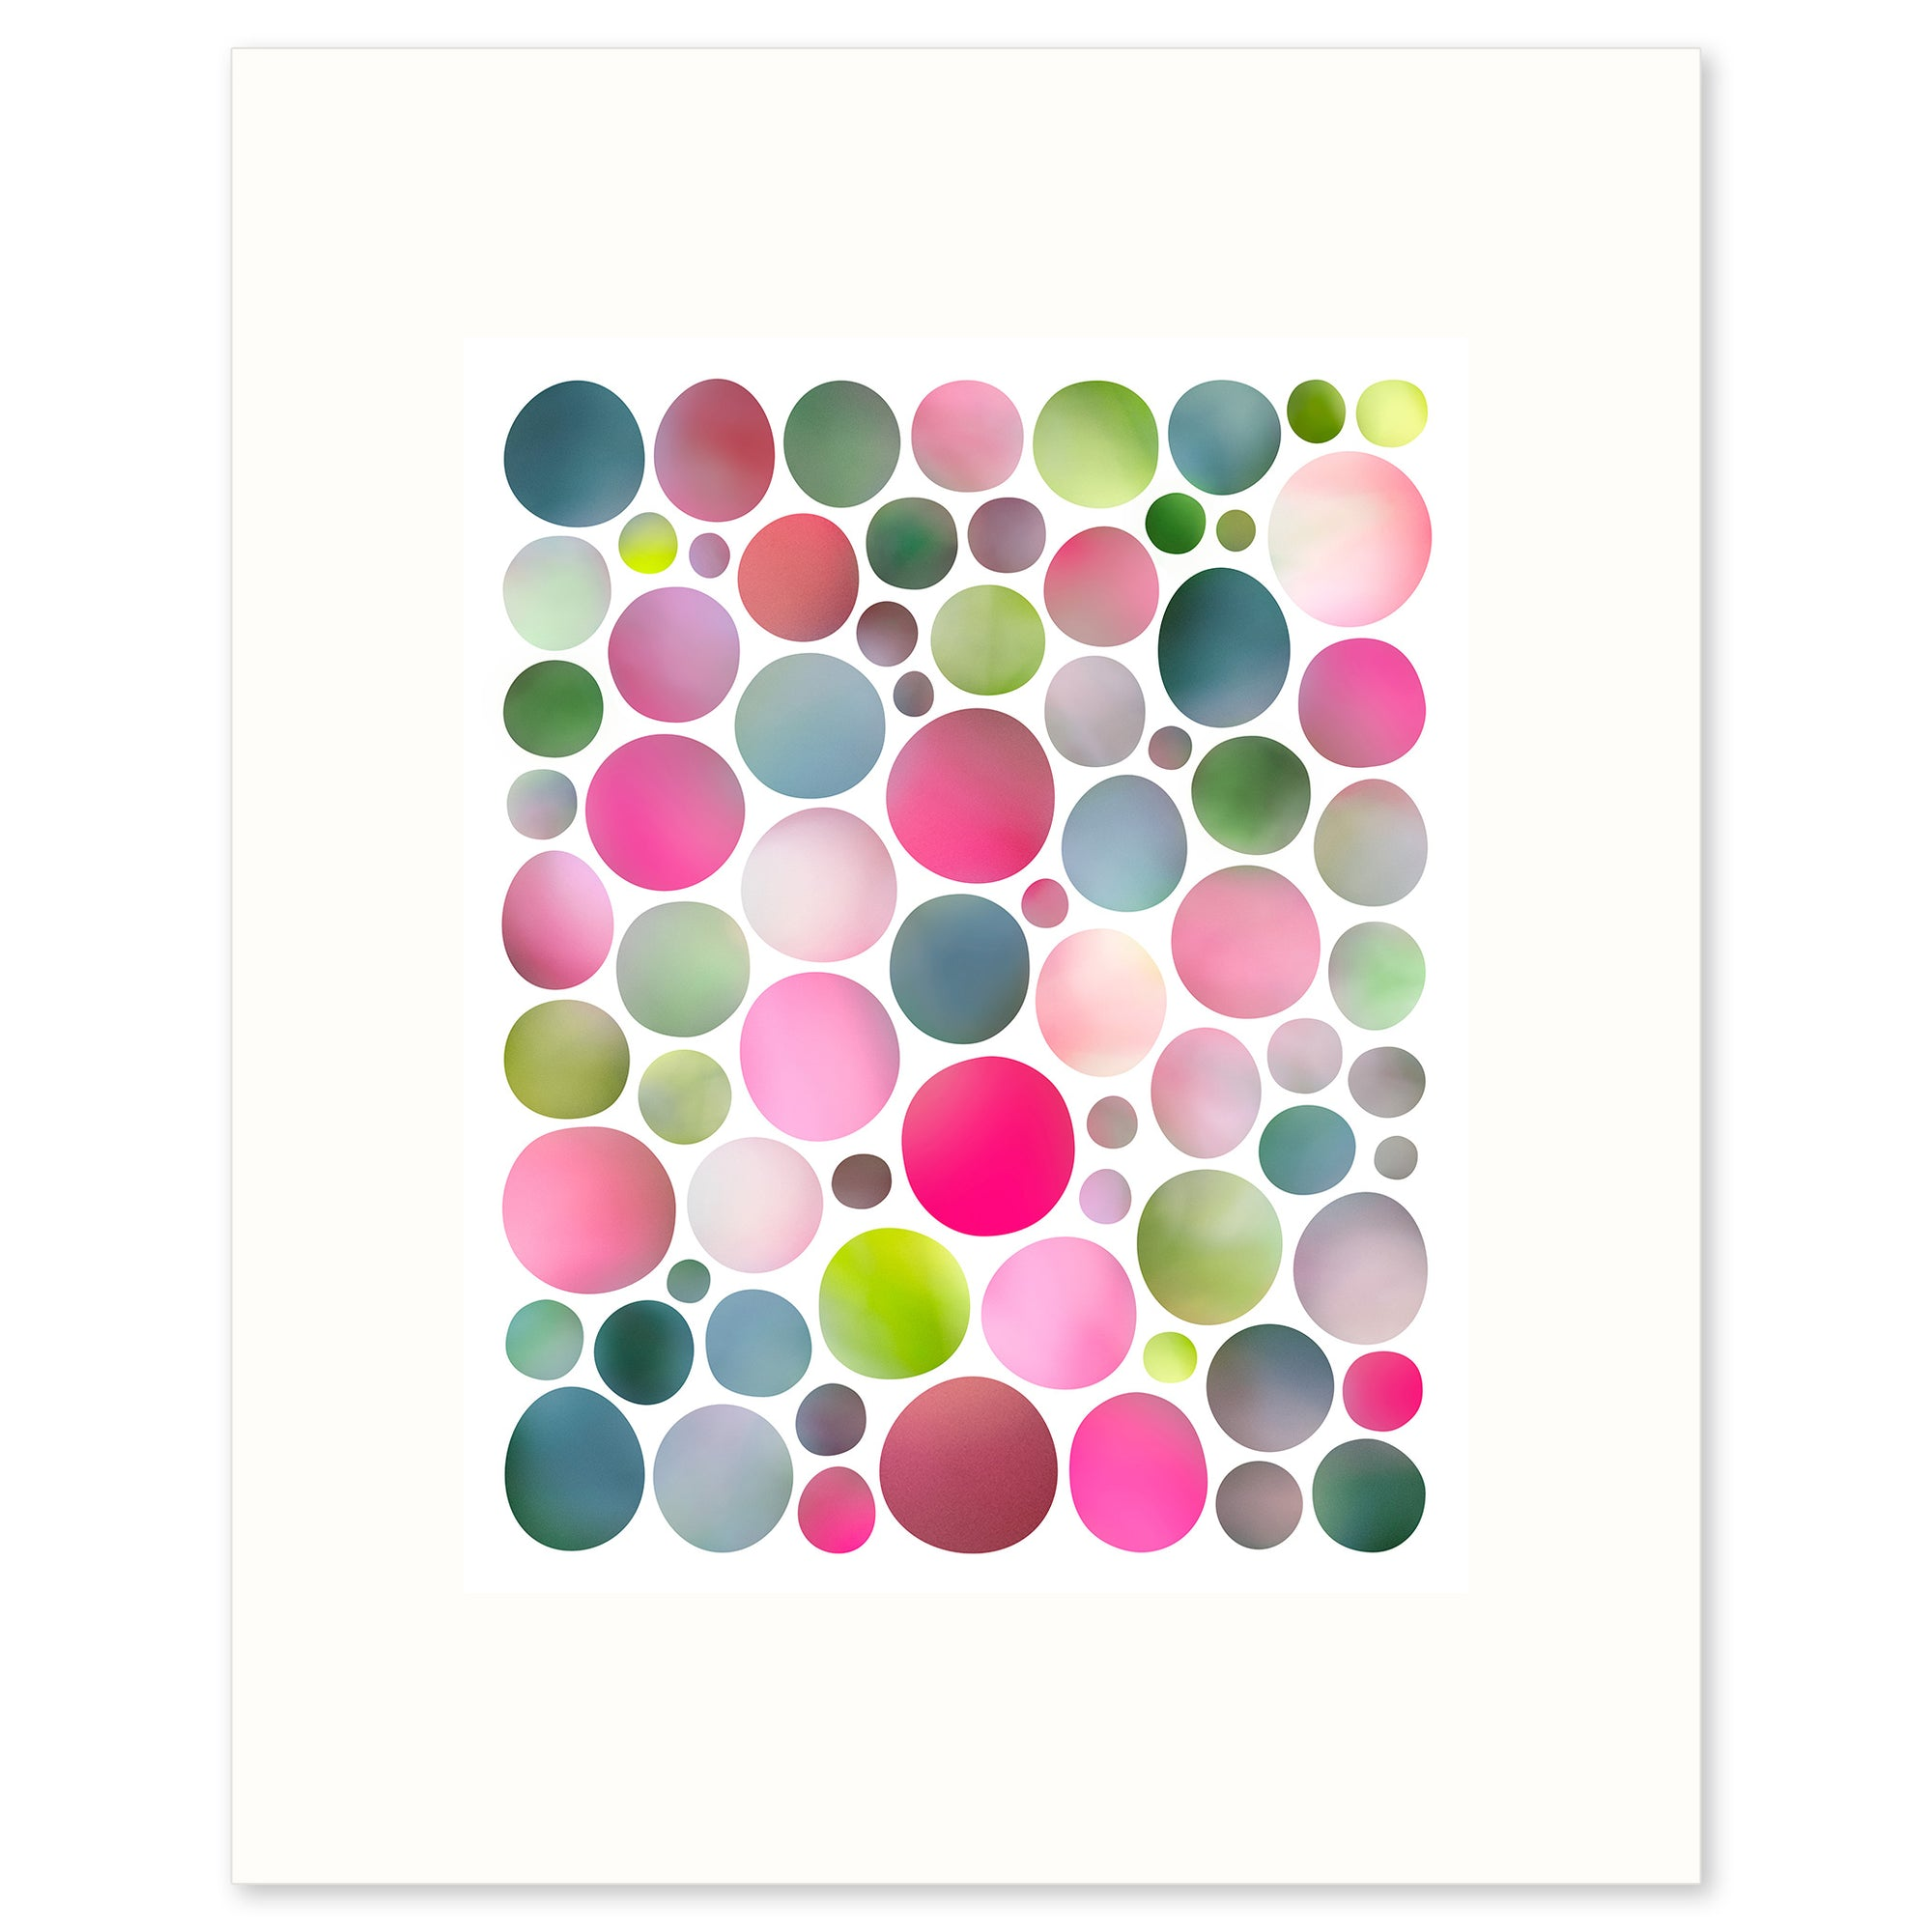 "Colourful abstract graphic limited edition fine art print 'In the Garden"", by Janet Taylor 